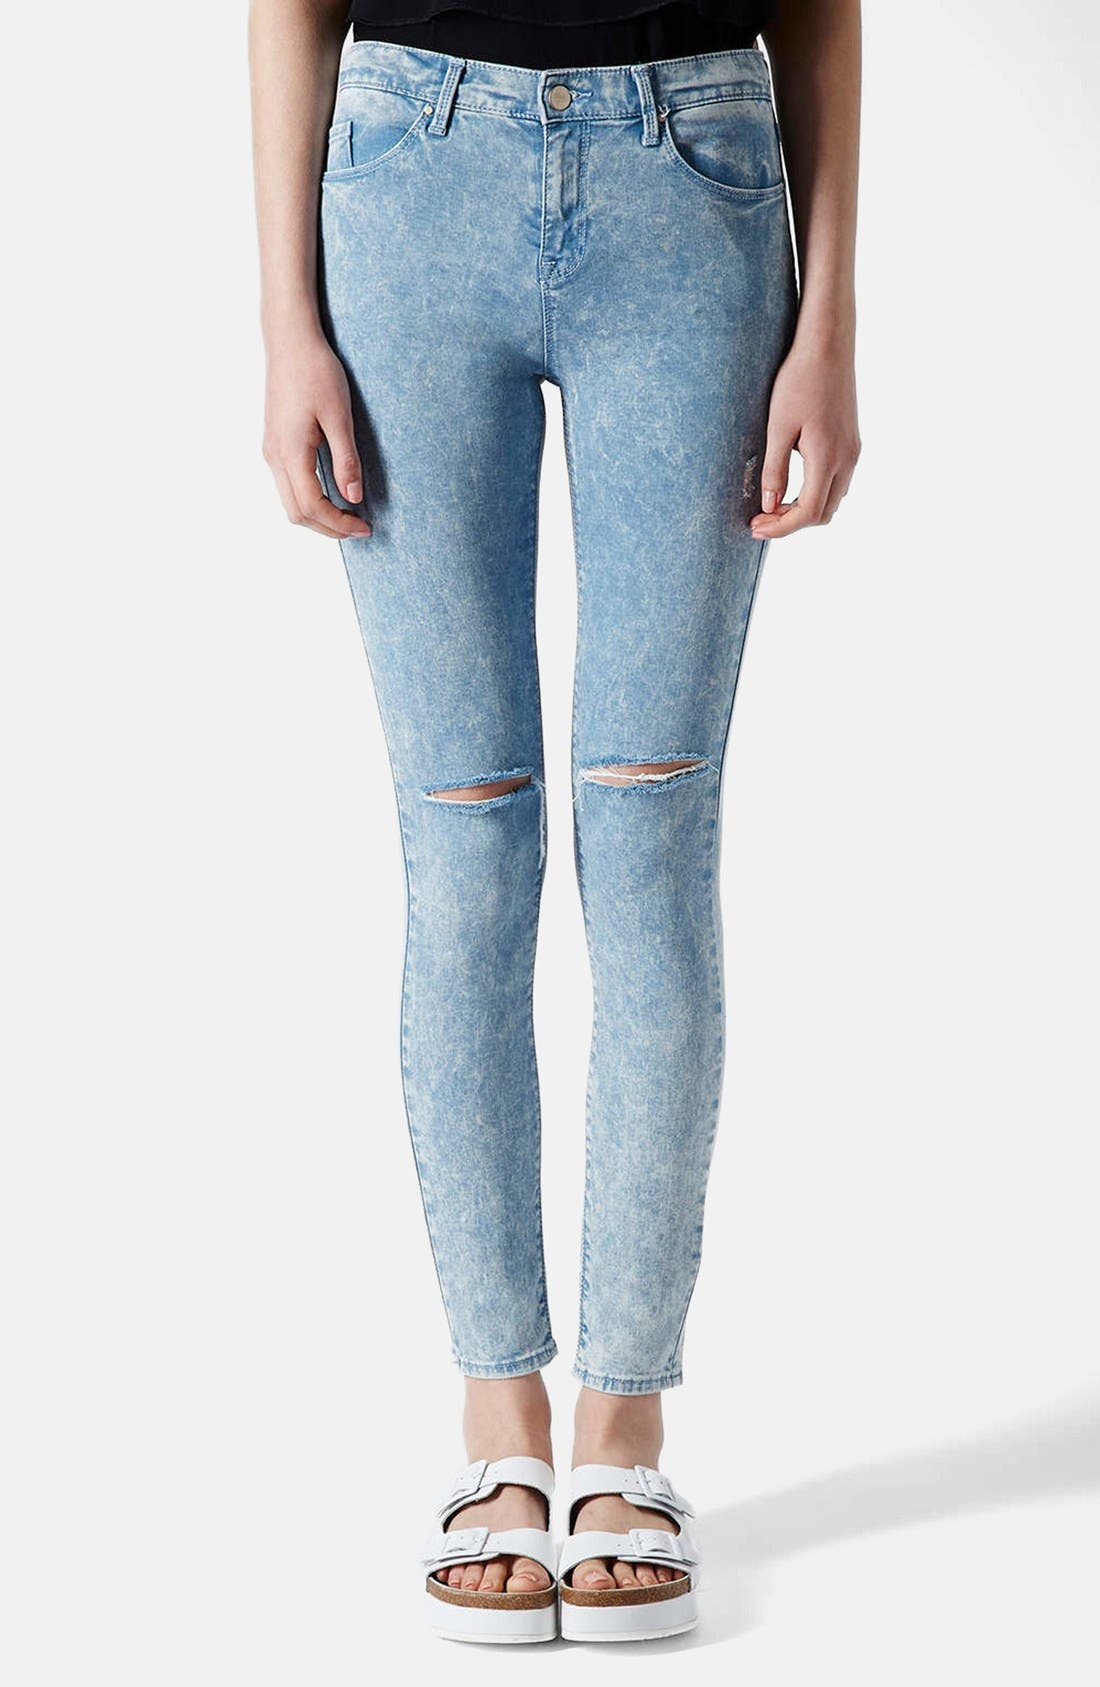 Main Image - Topshop Moto 'Leigh' Acid Wash Ripped Skinny Jeans (Light Blue) (Regular & Short)